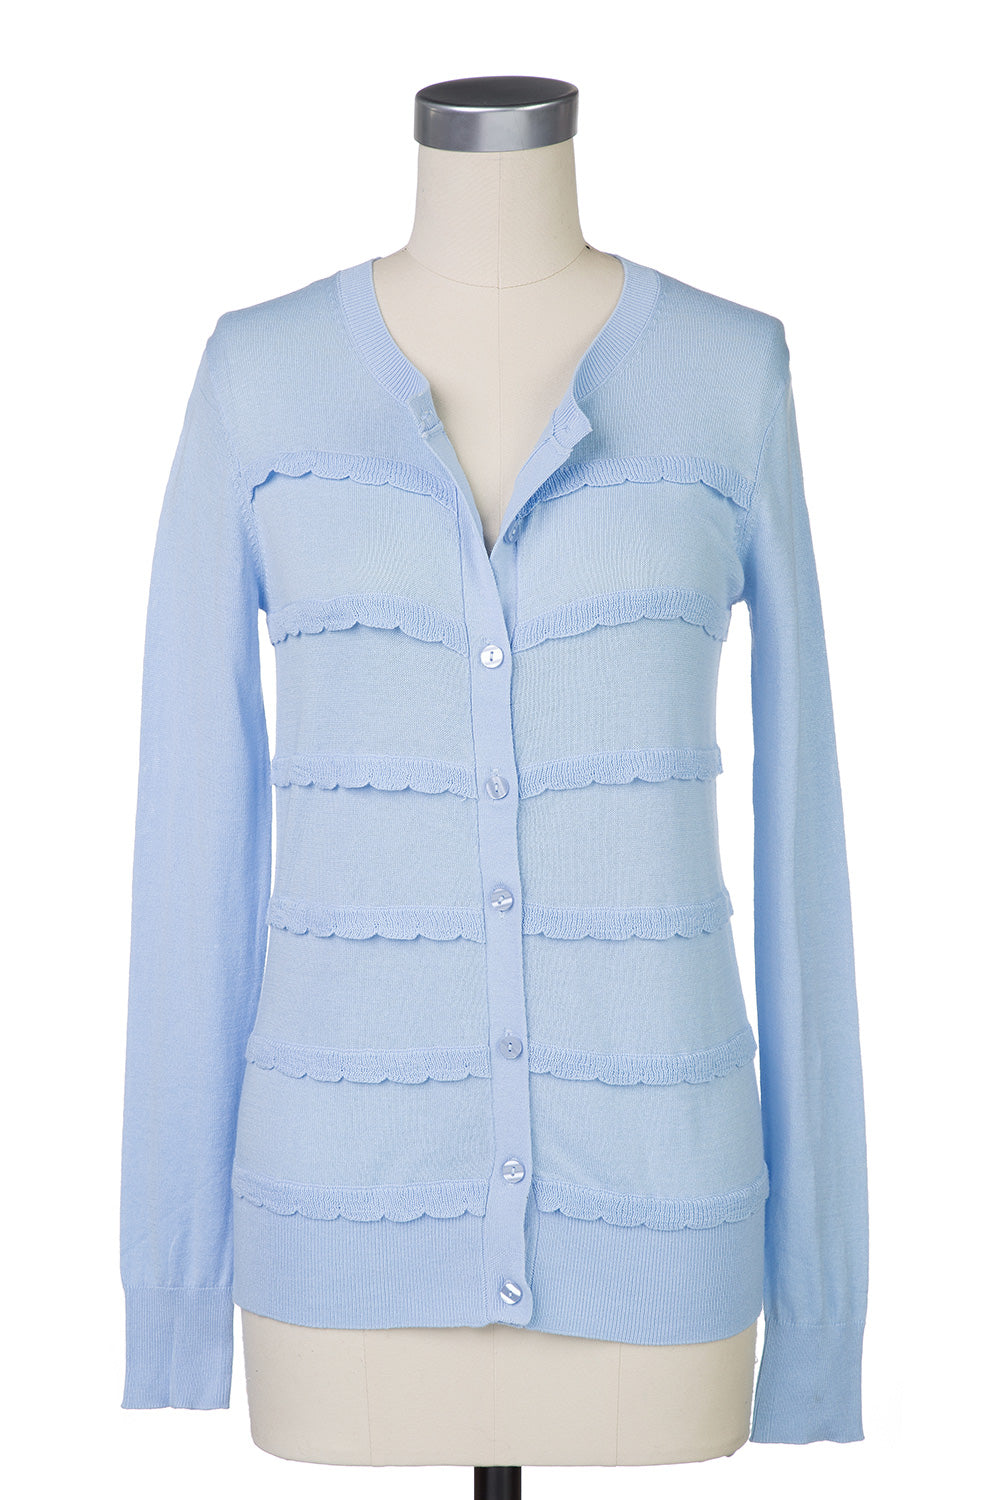 Type 2 Sweet Scallop Cardigan in Light Blue